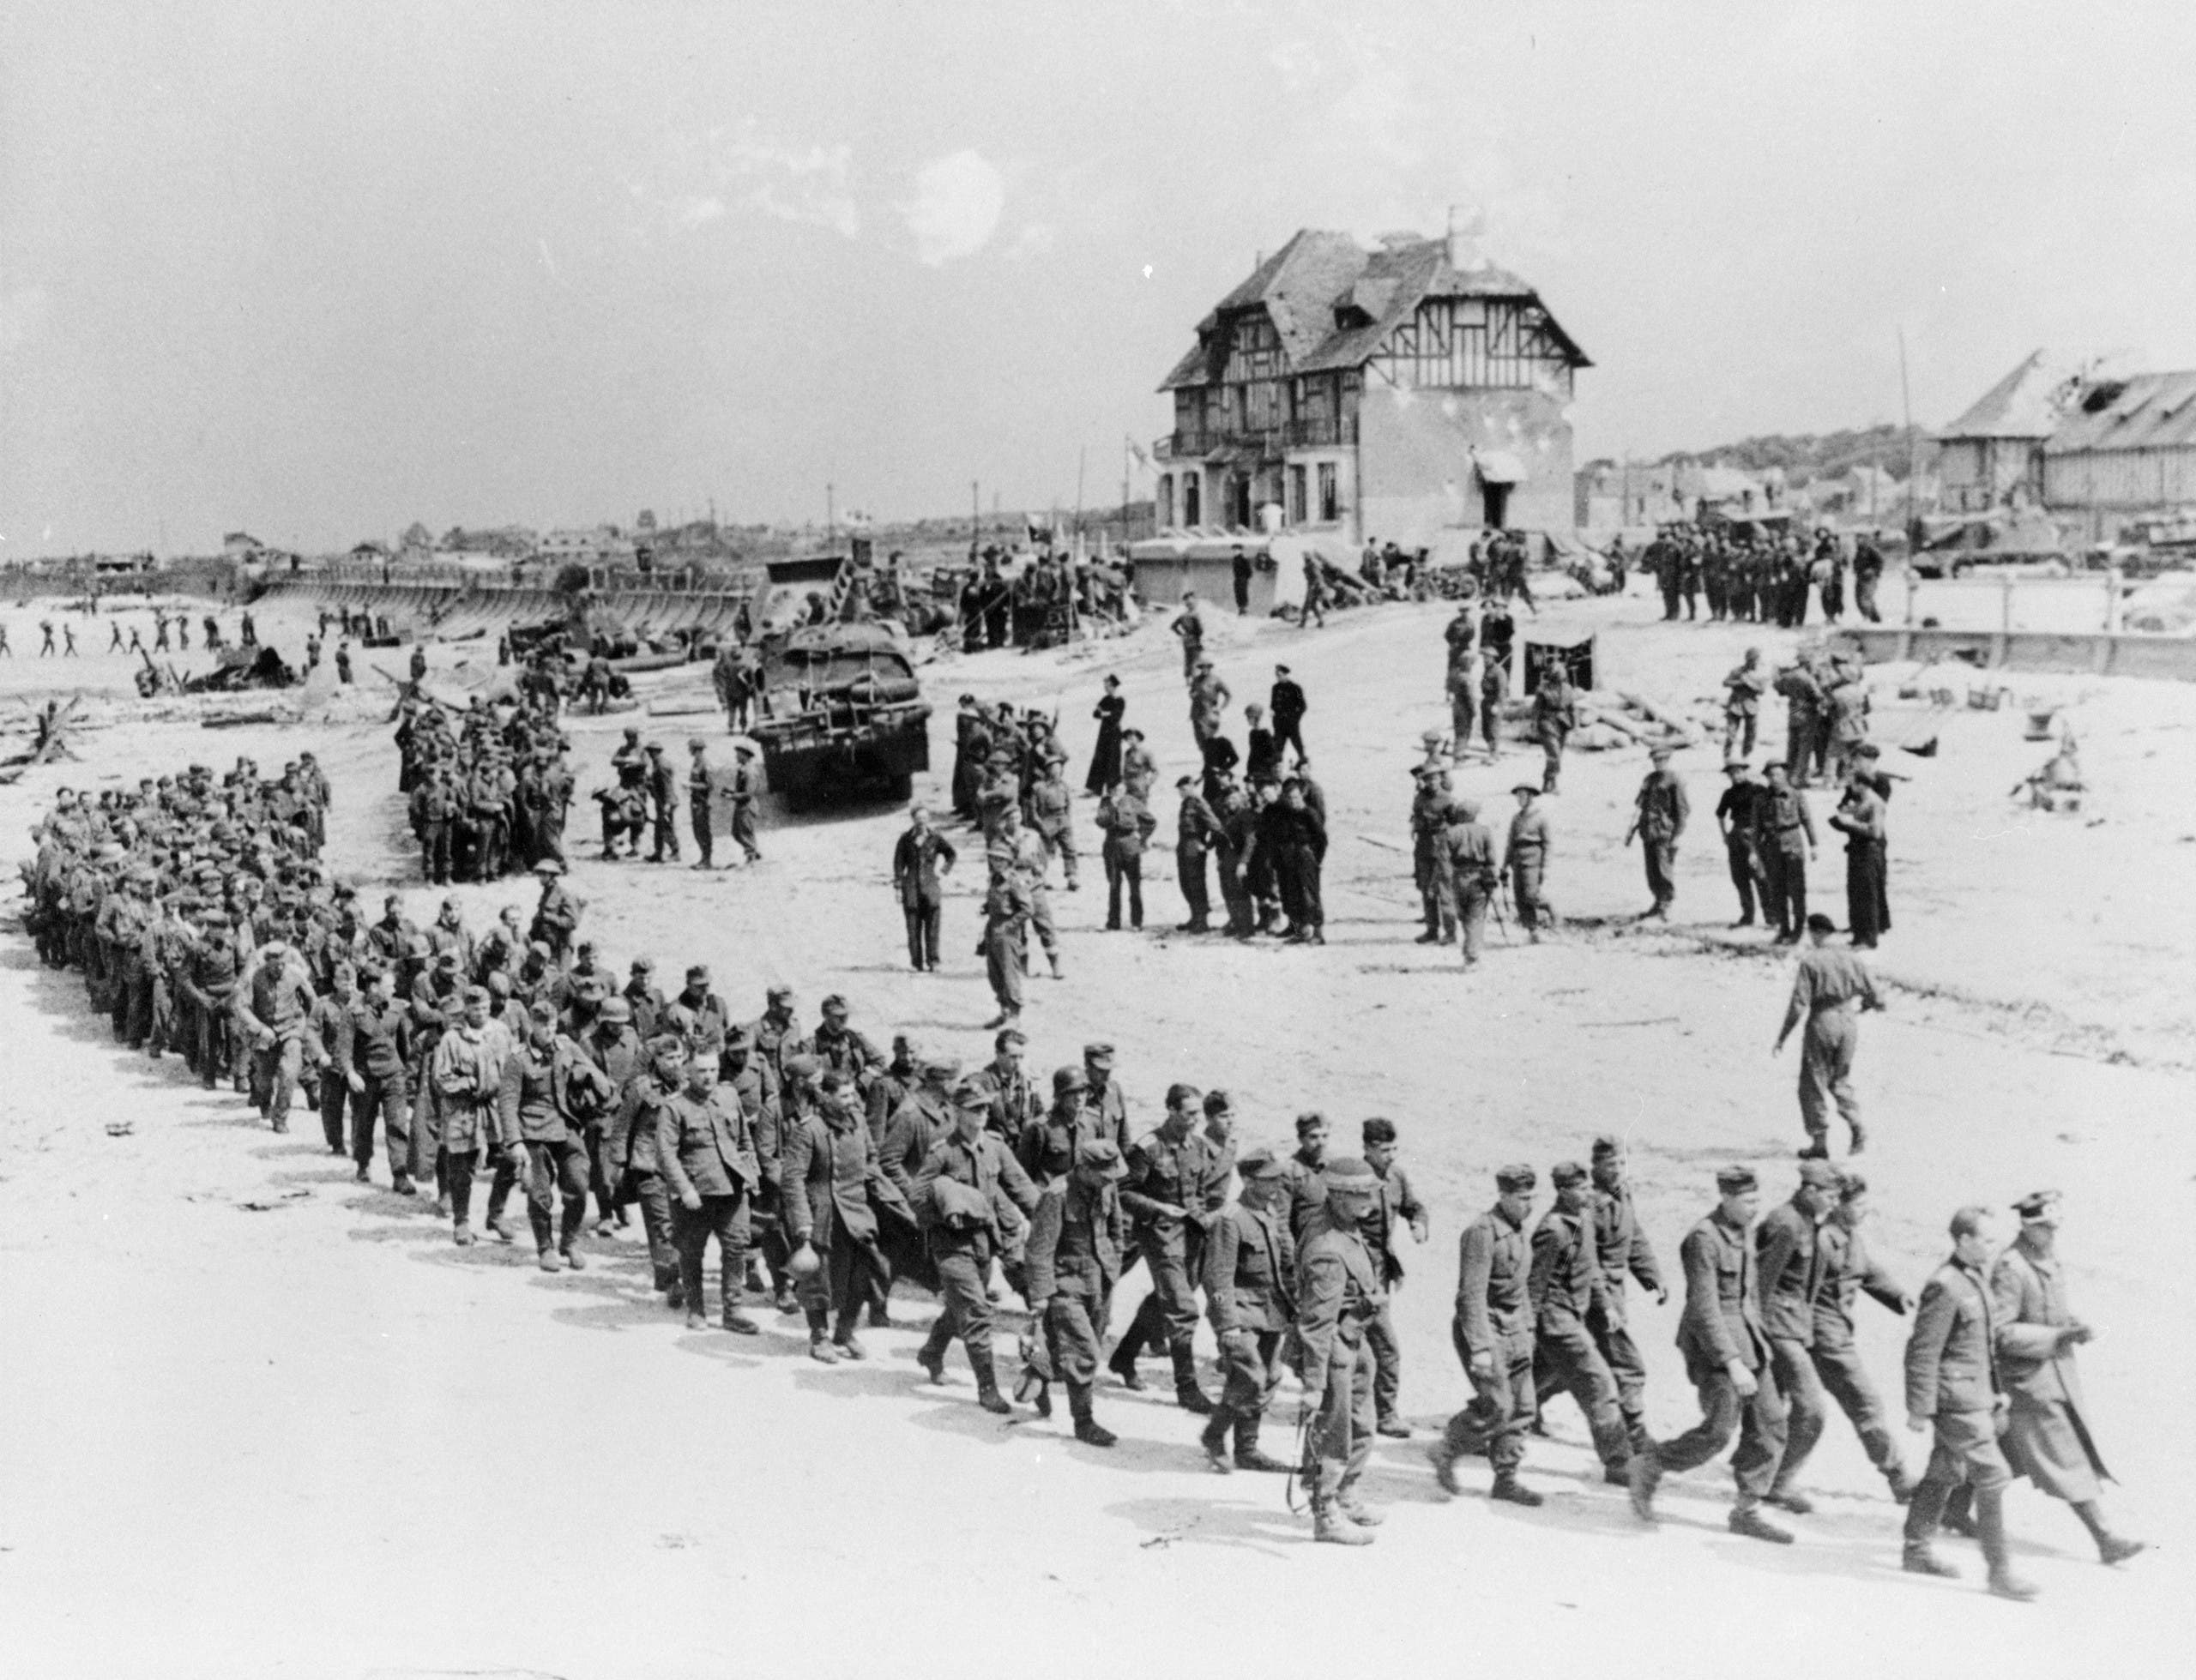 German prisoners-of-war march along Juno Beach landing area to a ship taking them to England, after they were captured by Canadian troops at Bernieres Sur Mer, France on June 6, 1944 in this handout photo provided by the National Archives of Canada. (Reuters)